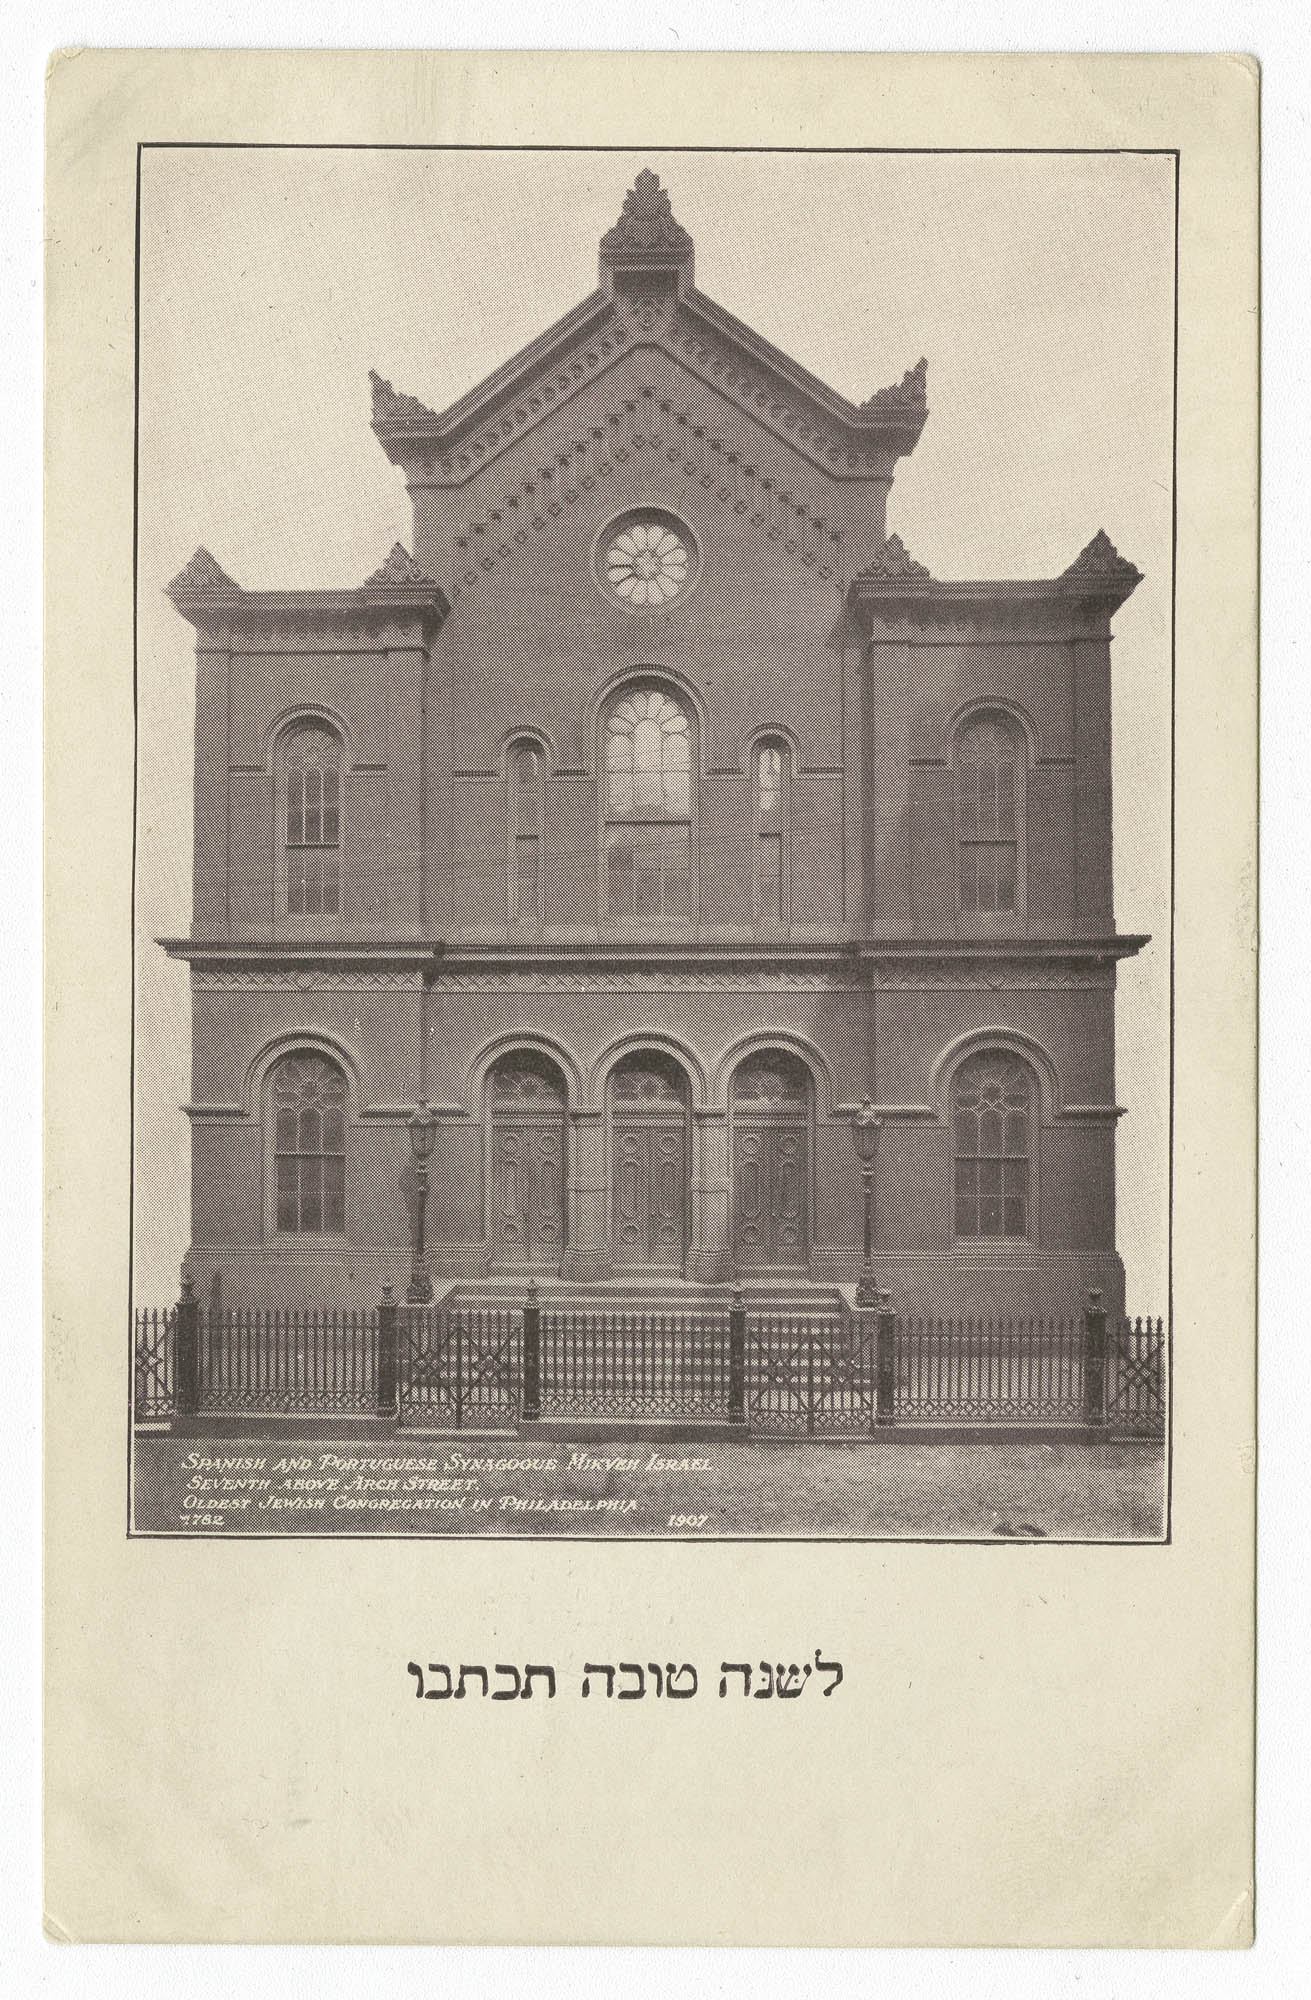 Spanish and Portuguese Synagogue Mikveh Israel, Seventh above Arch Street. Oldest Jewish congregation in Philadelphia.